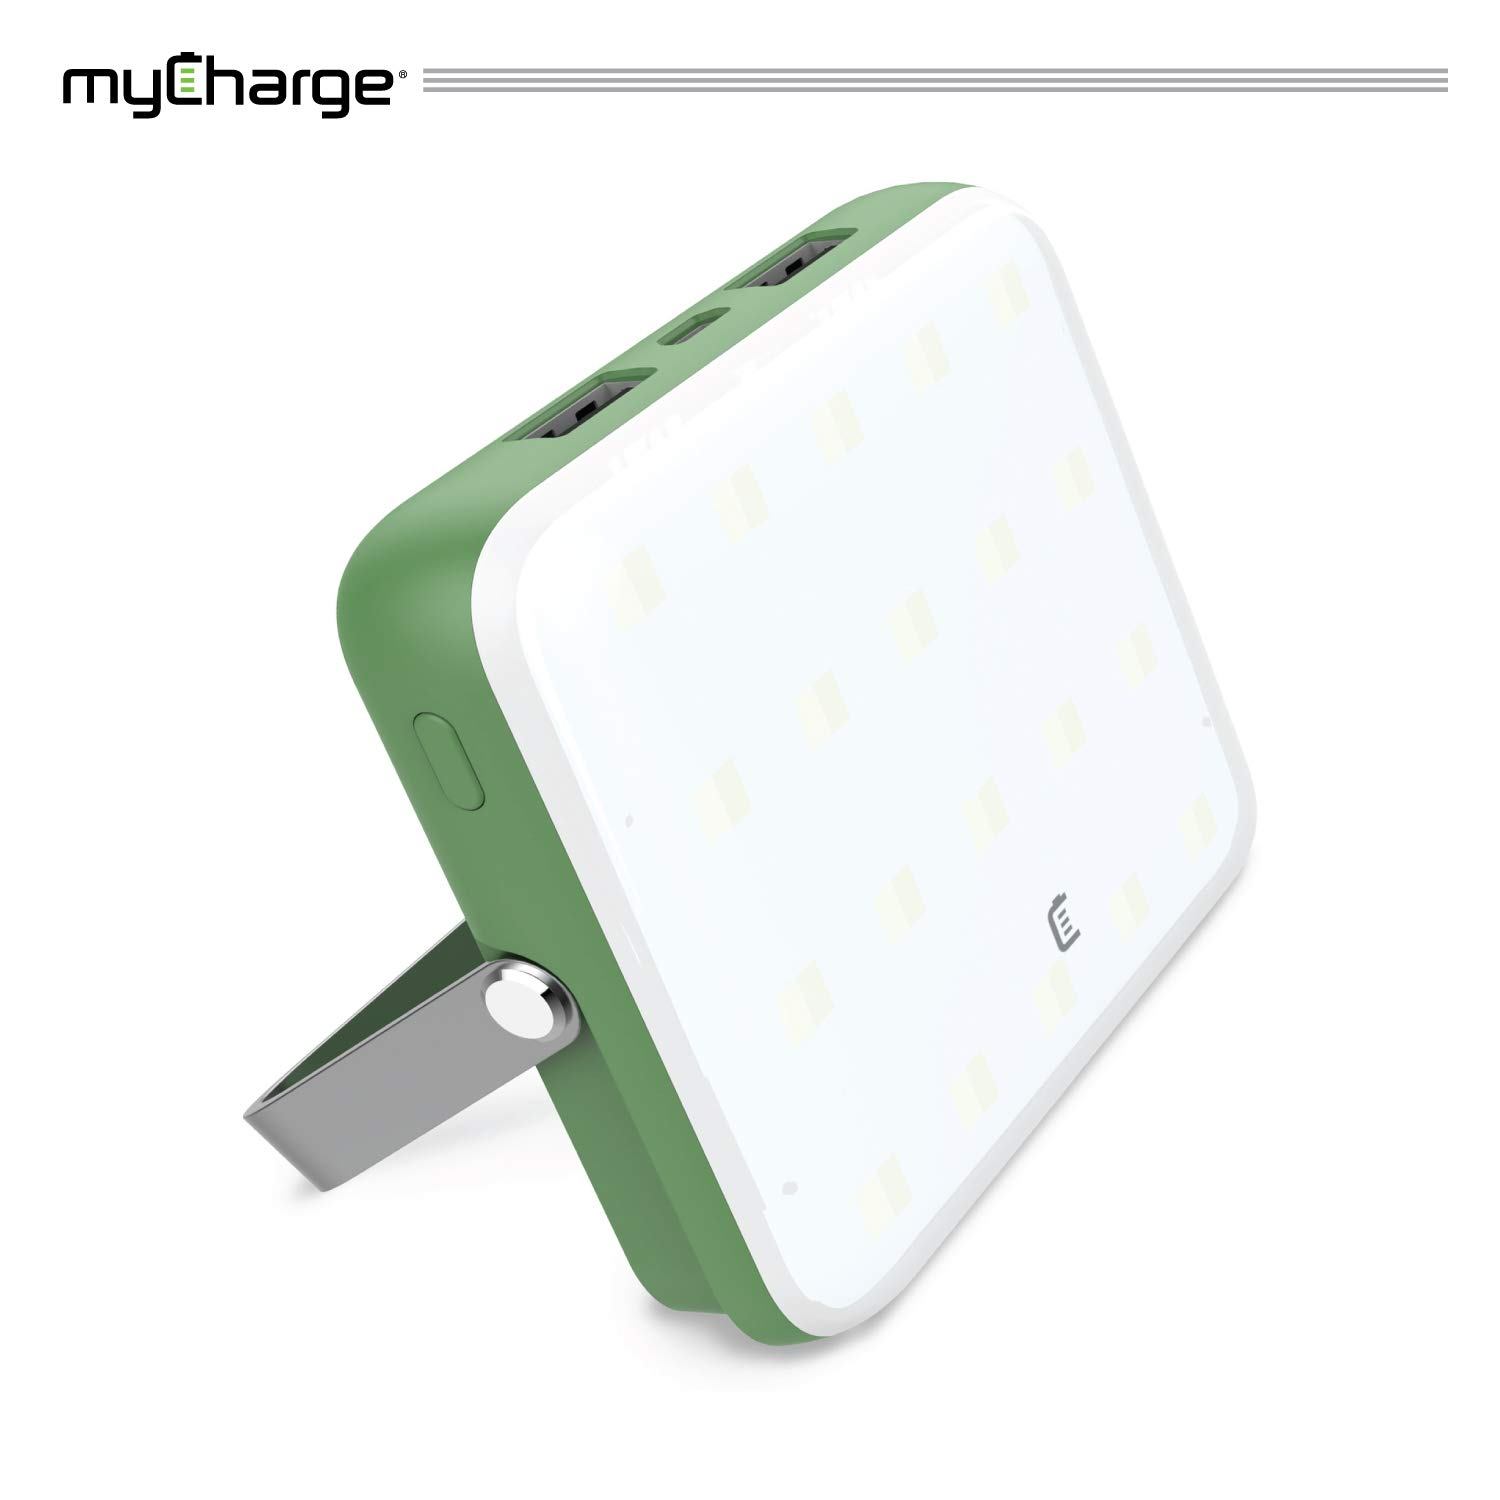 myCharge Camping Lantern Power Bank - 10,000 mAh Adventure Portable Charger | Rechargeable LED Phone Charger Battery Pack | 2 USB Ports / 2.4A Max | 40 HR Lamp Runtime / 4 Light Settings